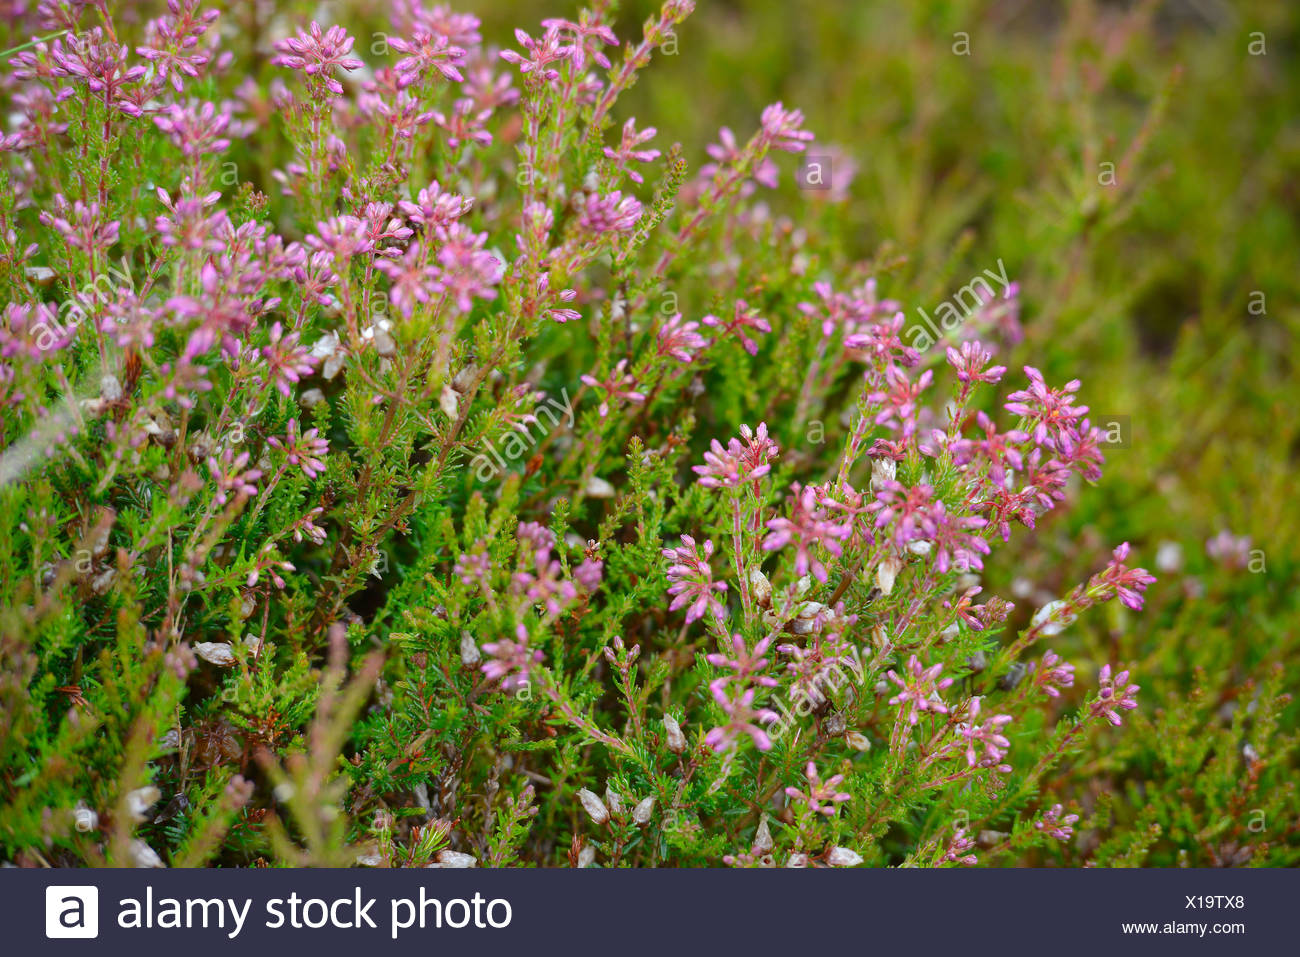 Heather in flower in the Scottish Highlands, Grampian Mountains, Scotland, United Kingdom, Europe - Stock Image